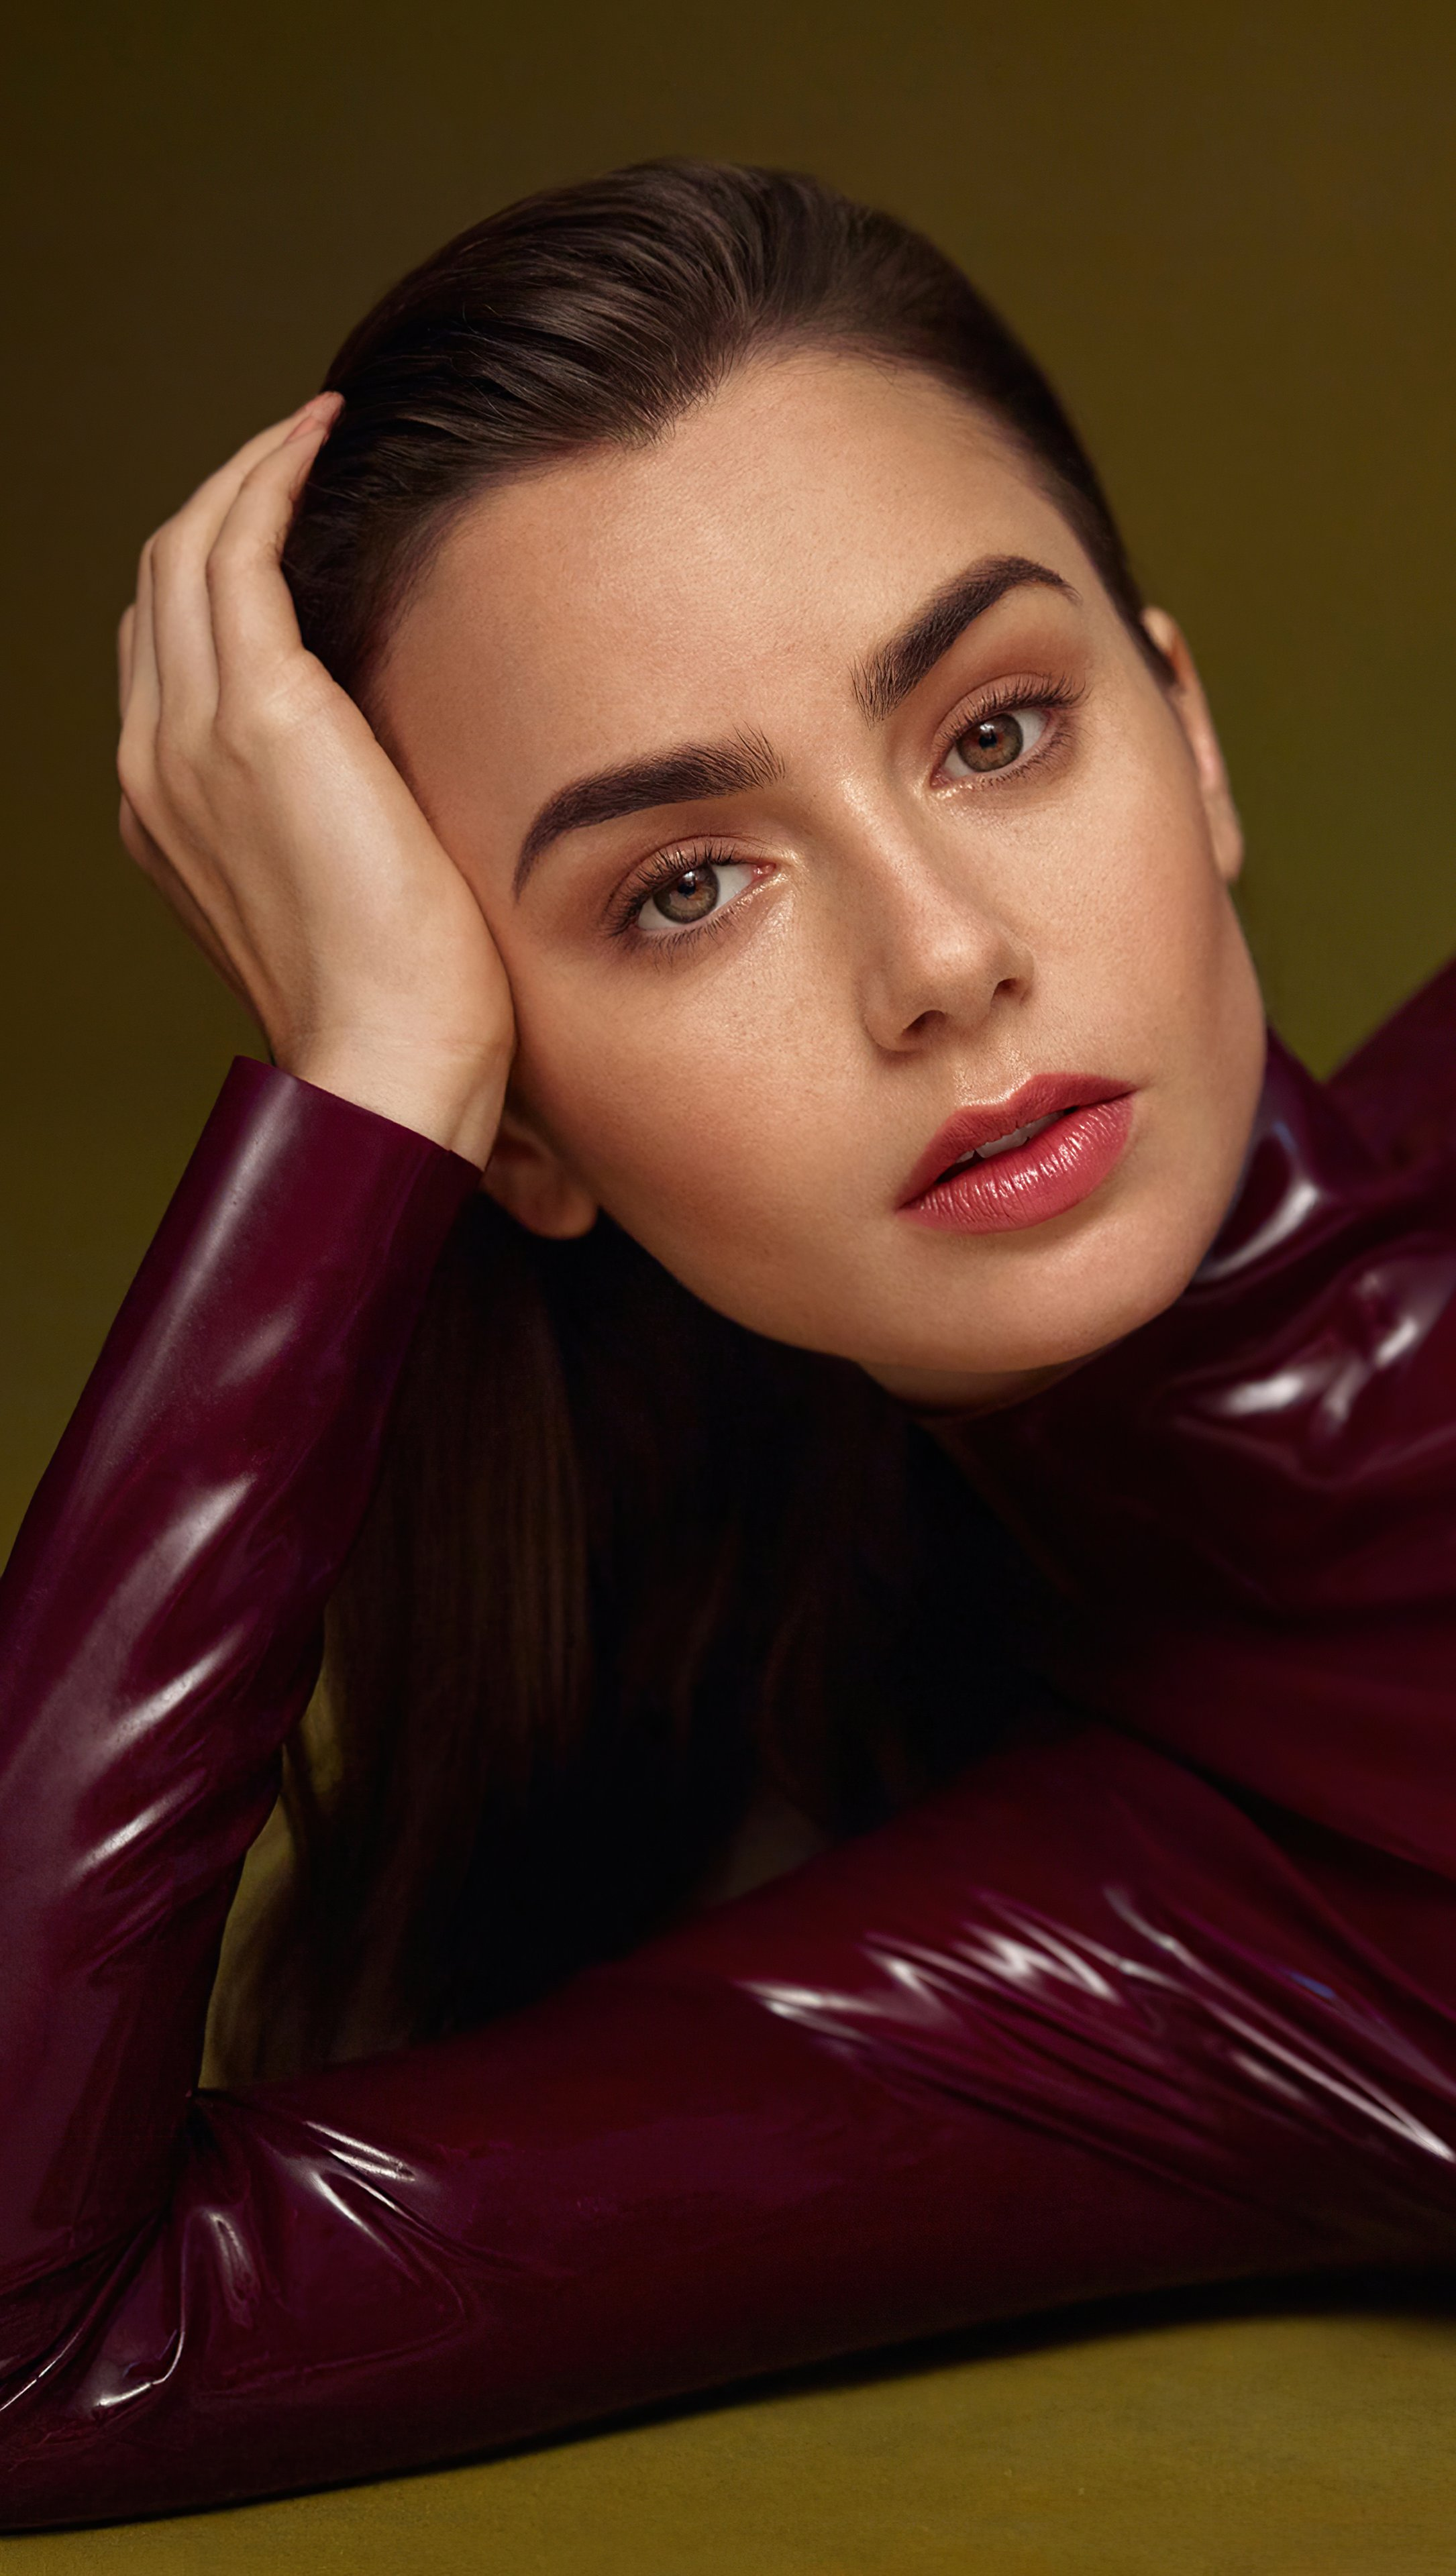 Wallpaper Lily Collins for Vogue Arabia Cover Vertical